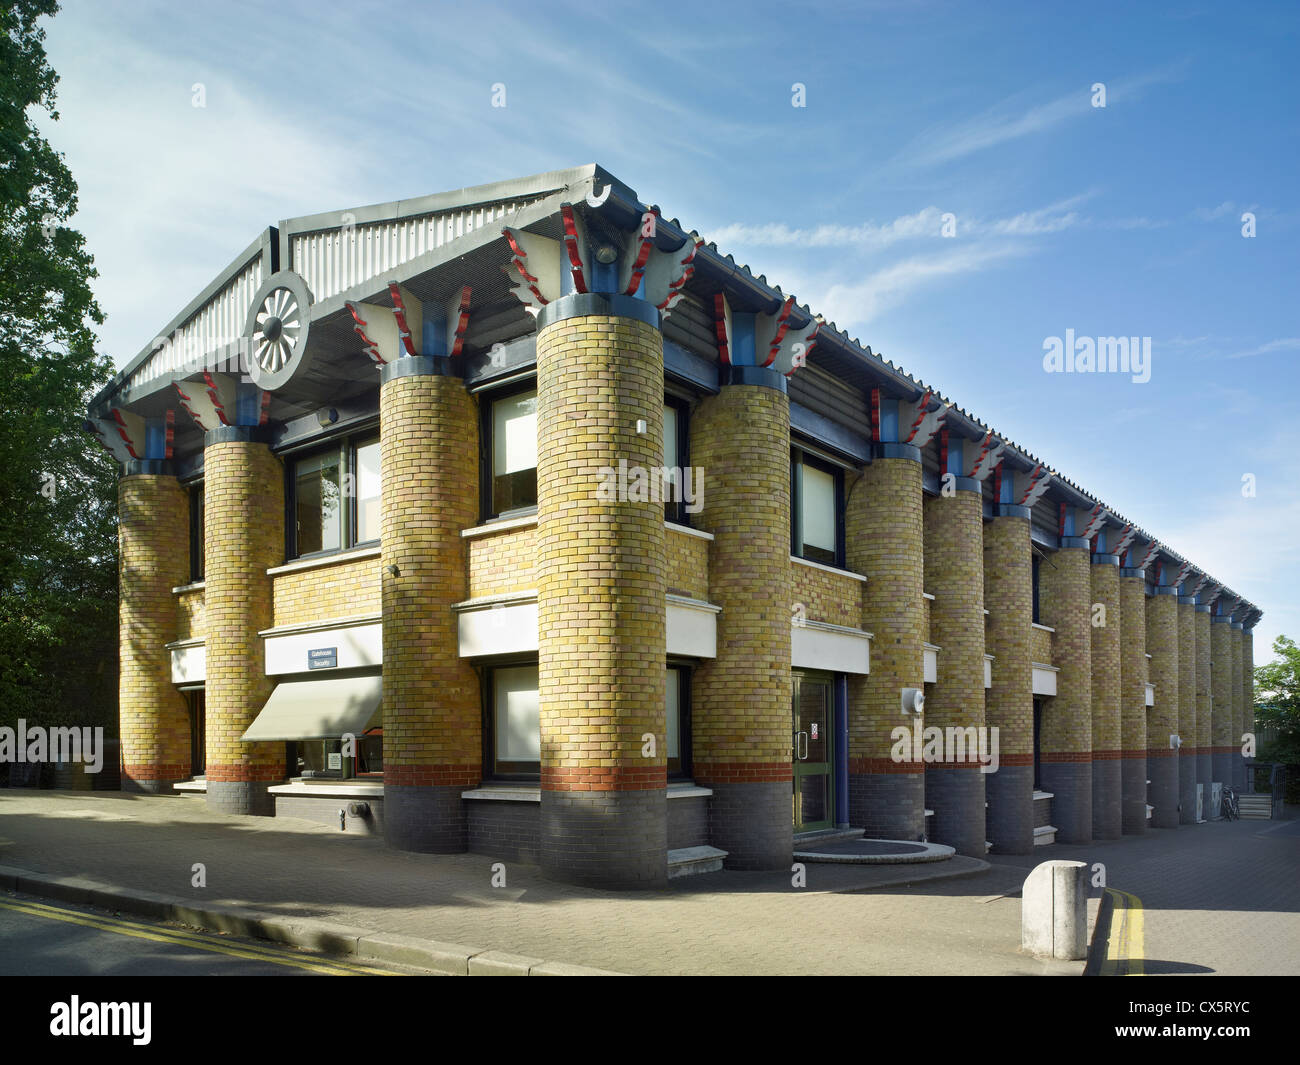 Swanley, Kent, United House, by John Outram - Stock Image